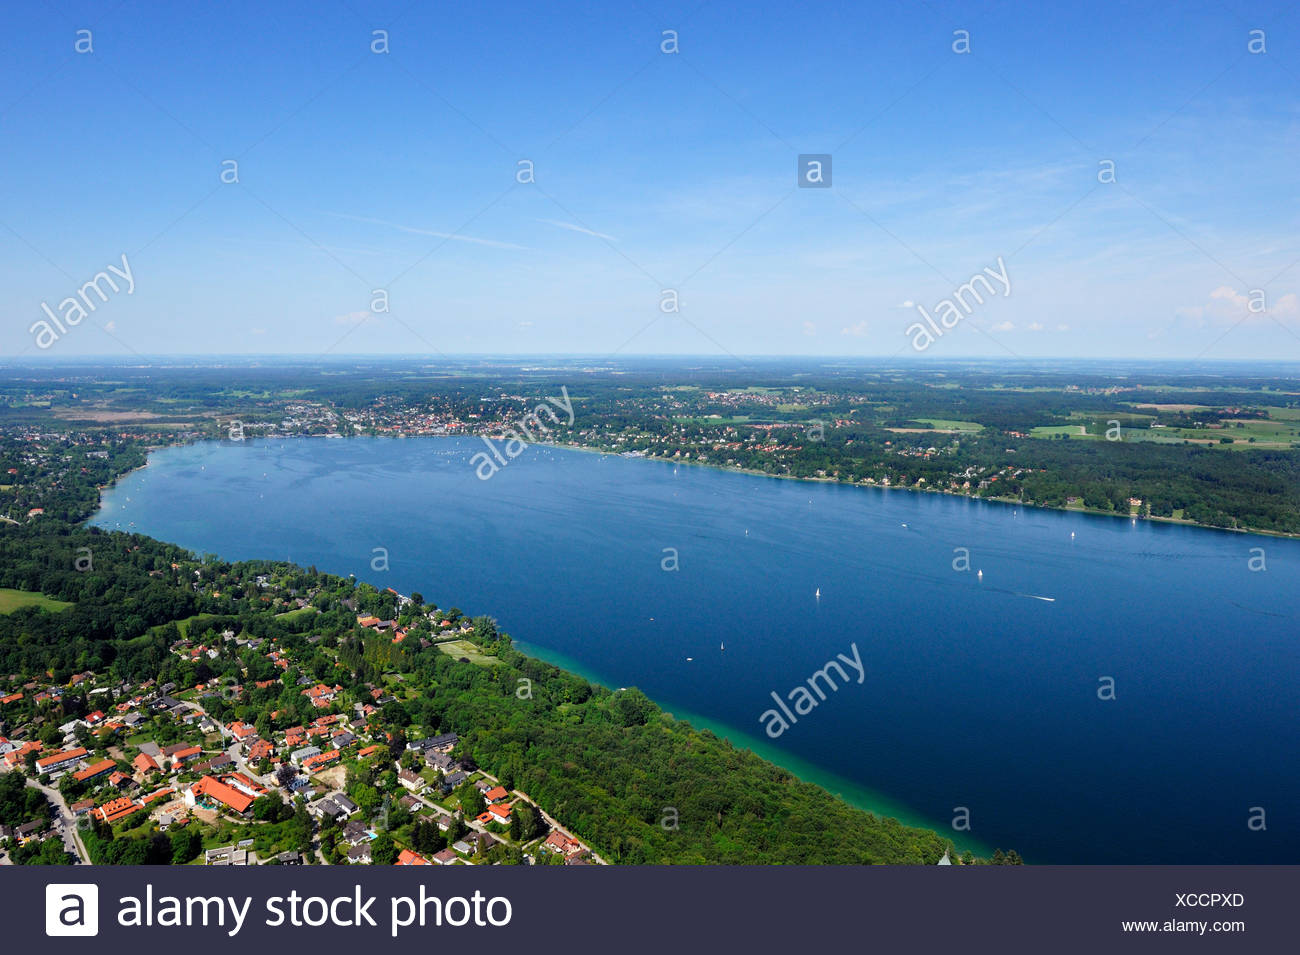 North end of Lake Starnberg, Starnberg, Bavaria, Germany, Europe - Stock Image